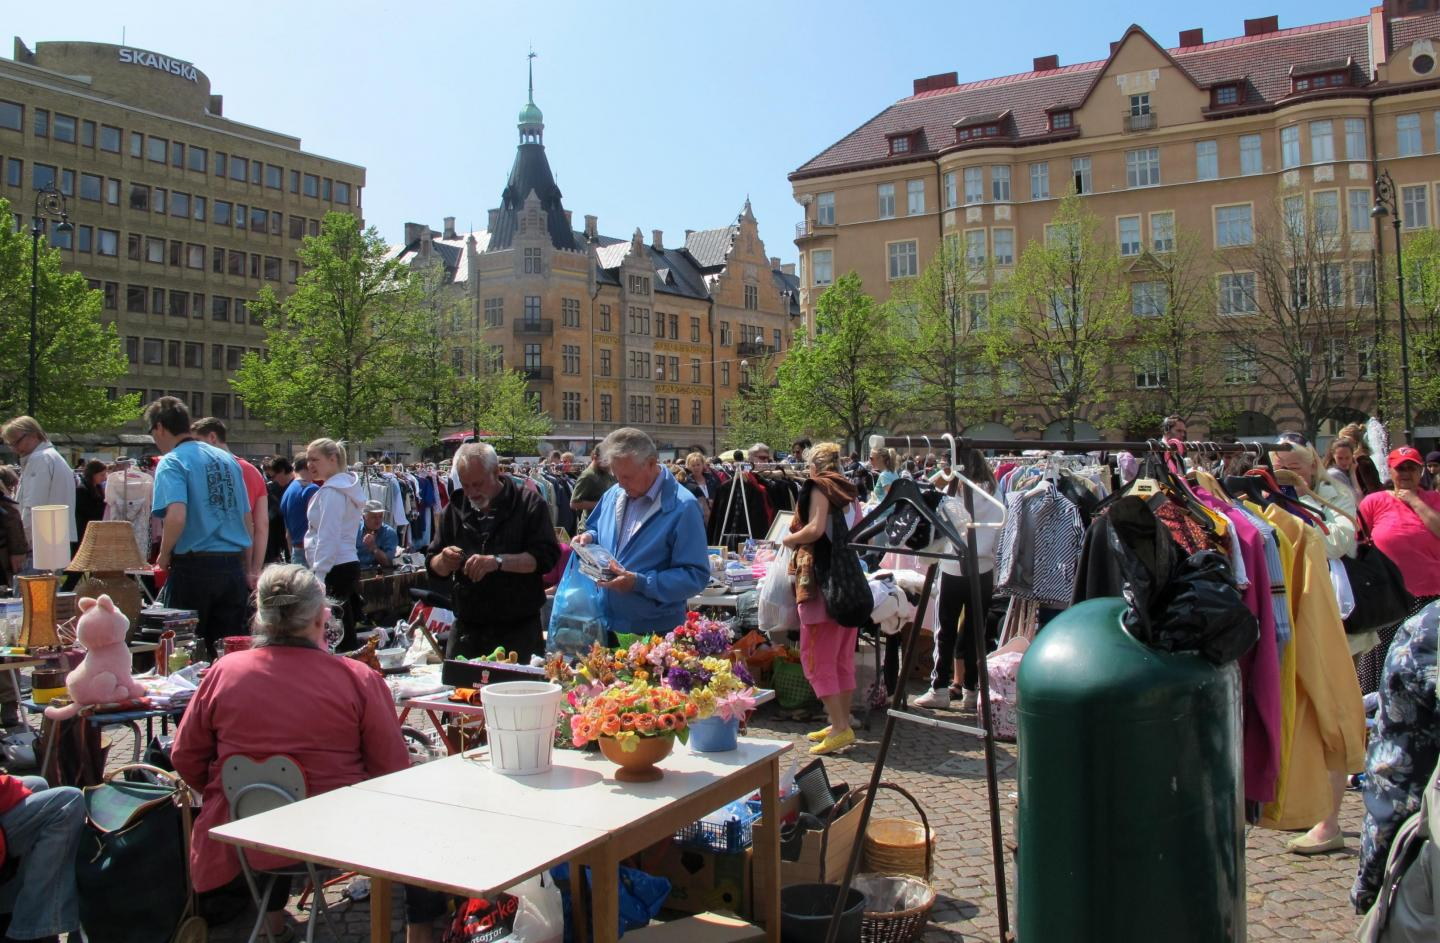 Flea market at Drottningtorget